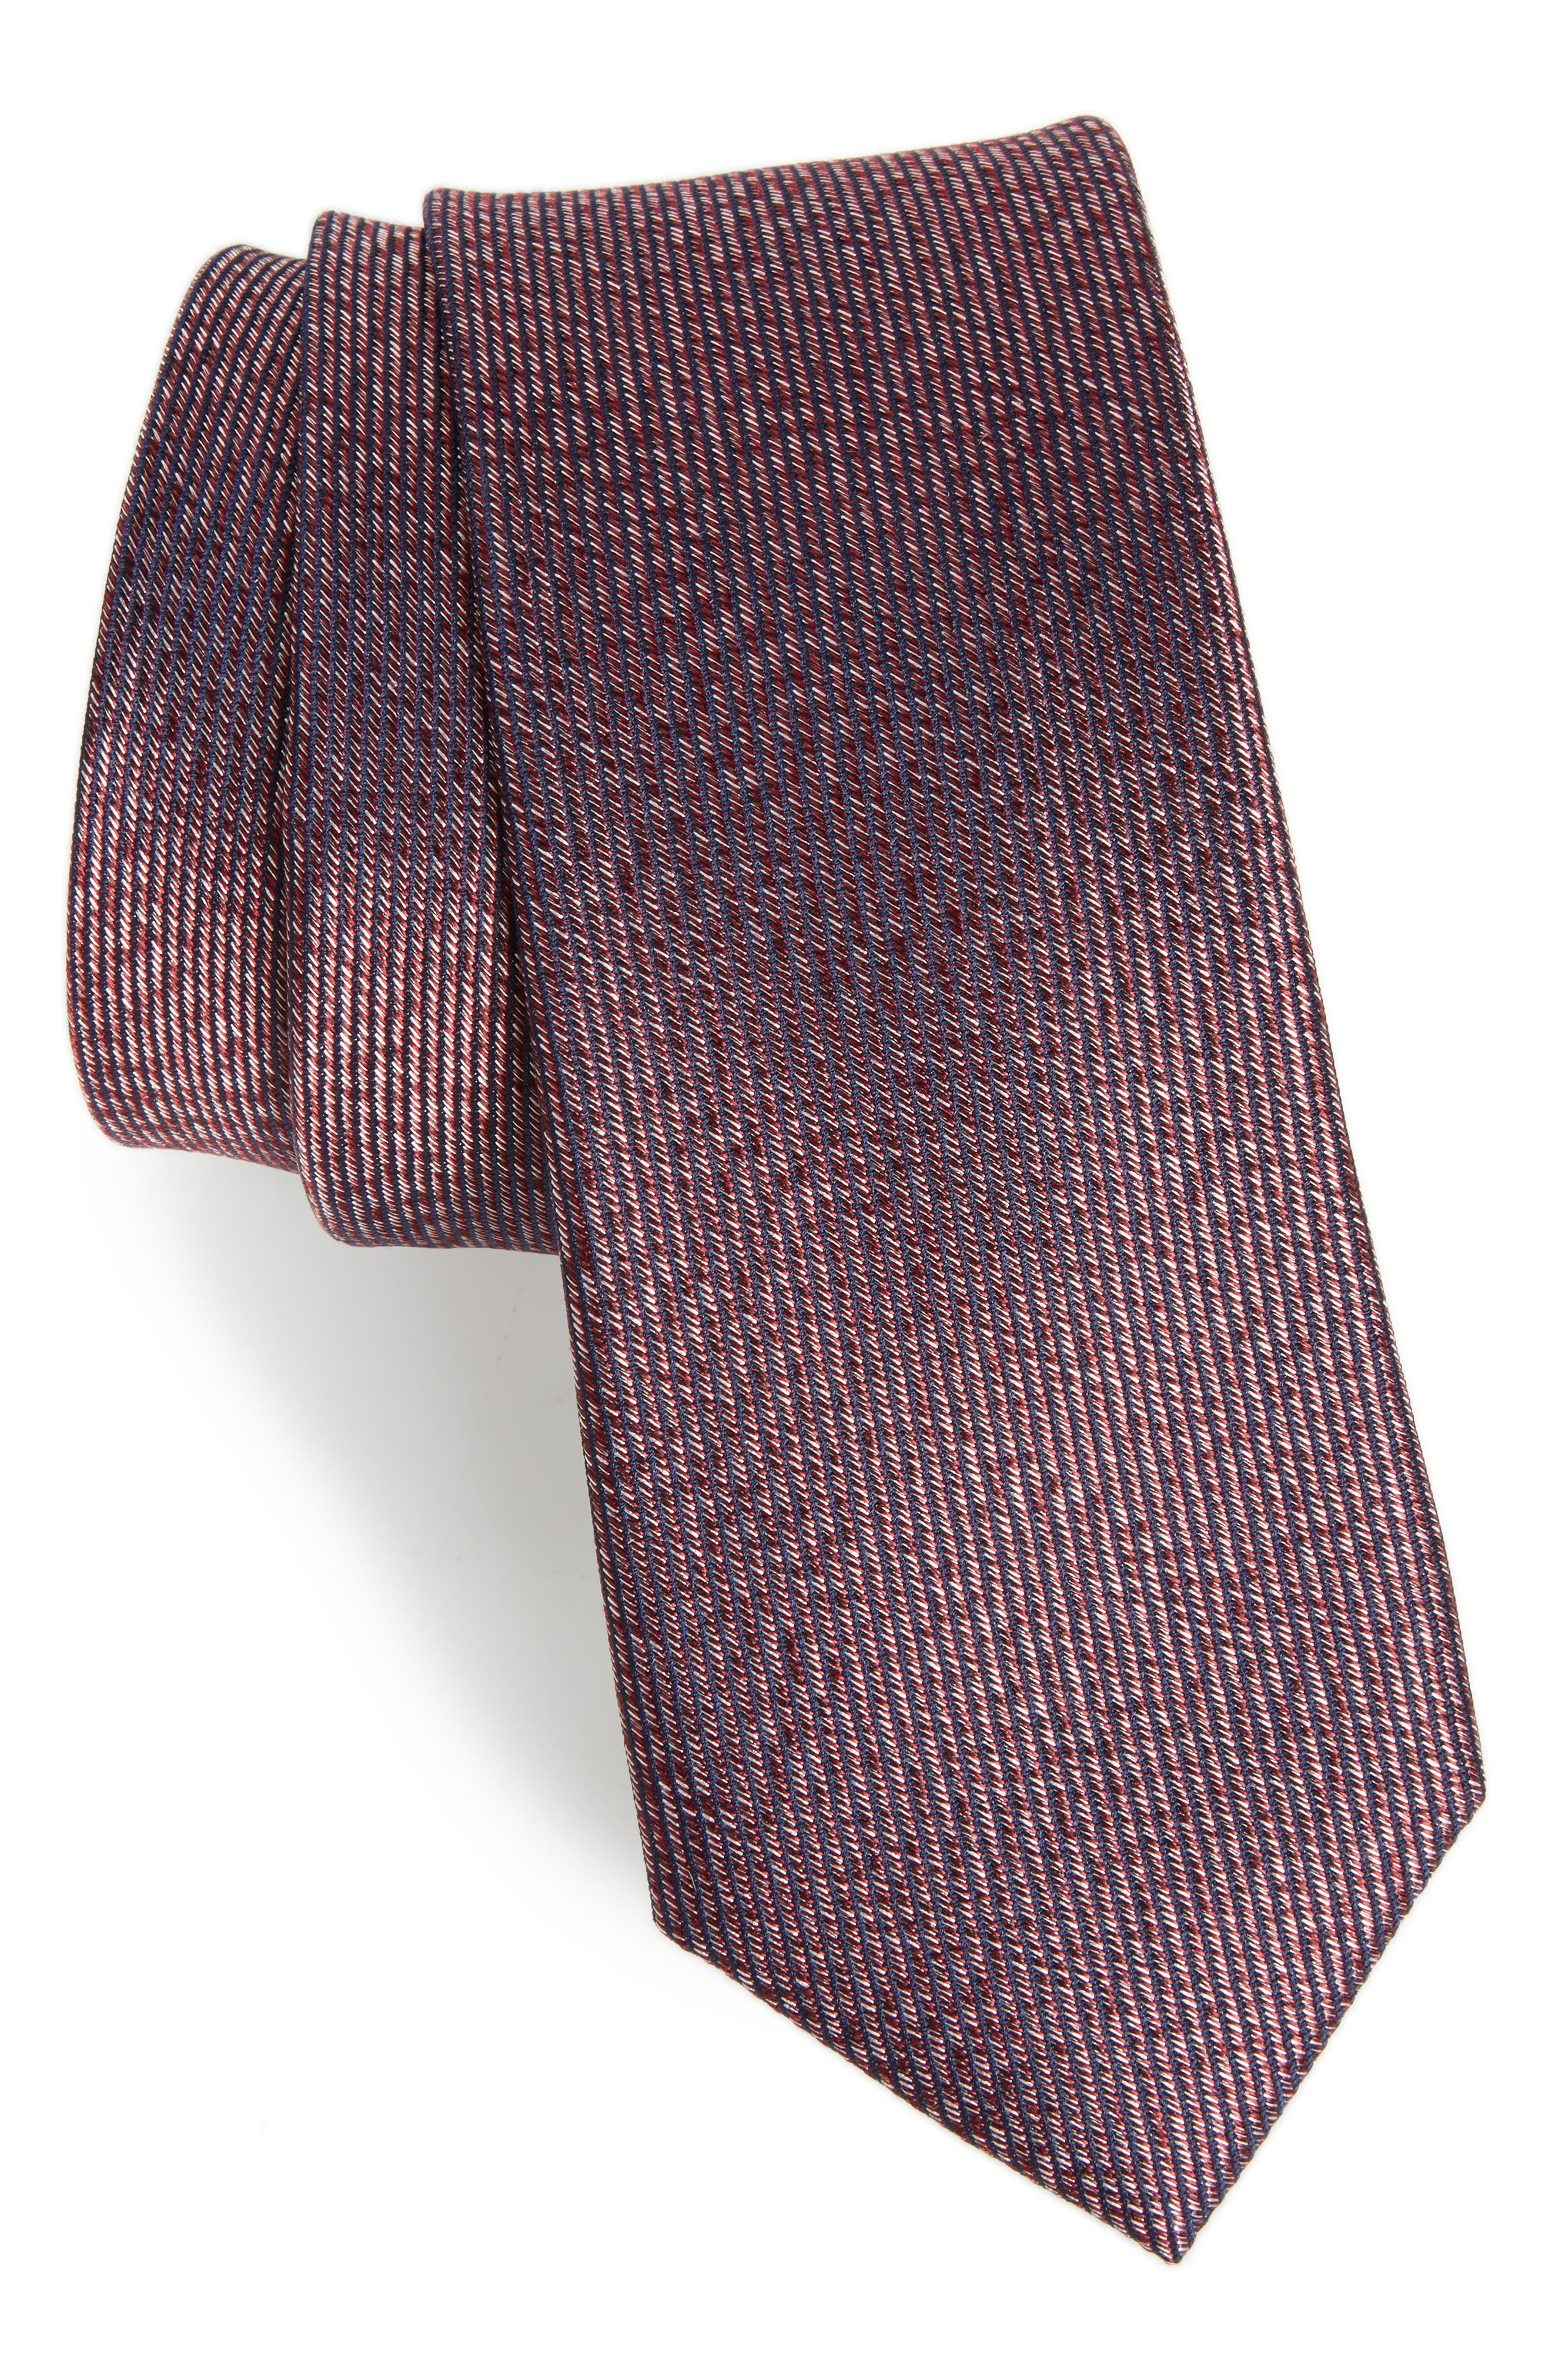 Main Image - Calibrate Heathered Solid Silk Tie